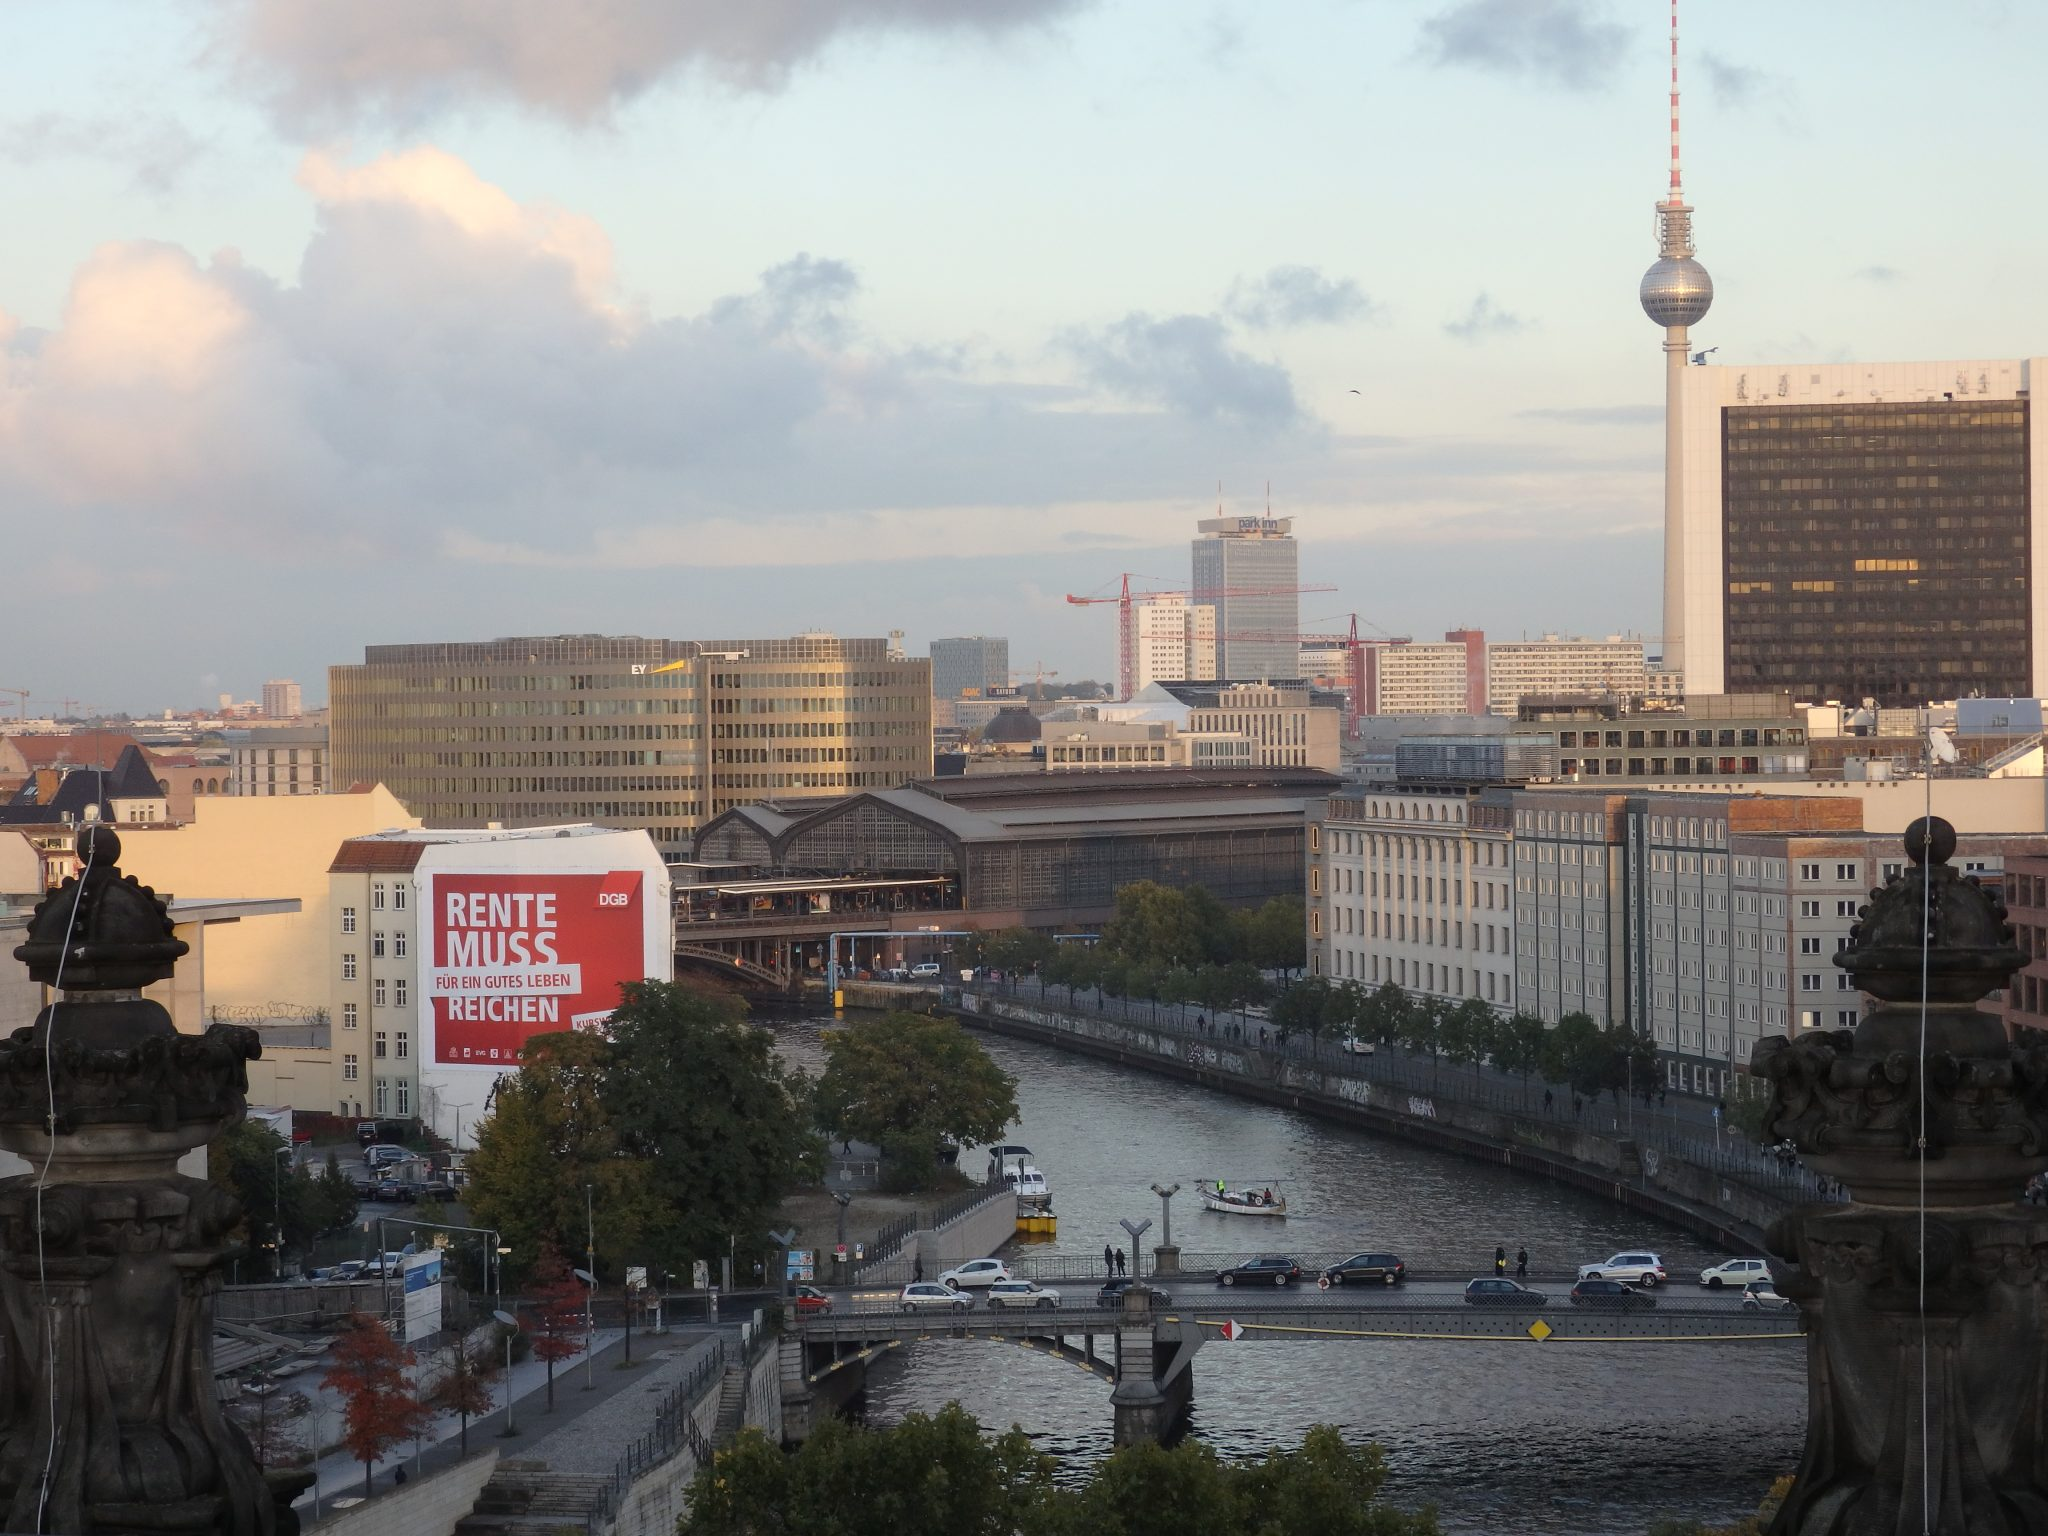 One of many views from the Reichstag dome. Here, on the Spree River, you can see Friedrichstrasse Station, the low brown building; the Television Tower; and, in front of the tower, the International Trade Center.